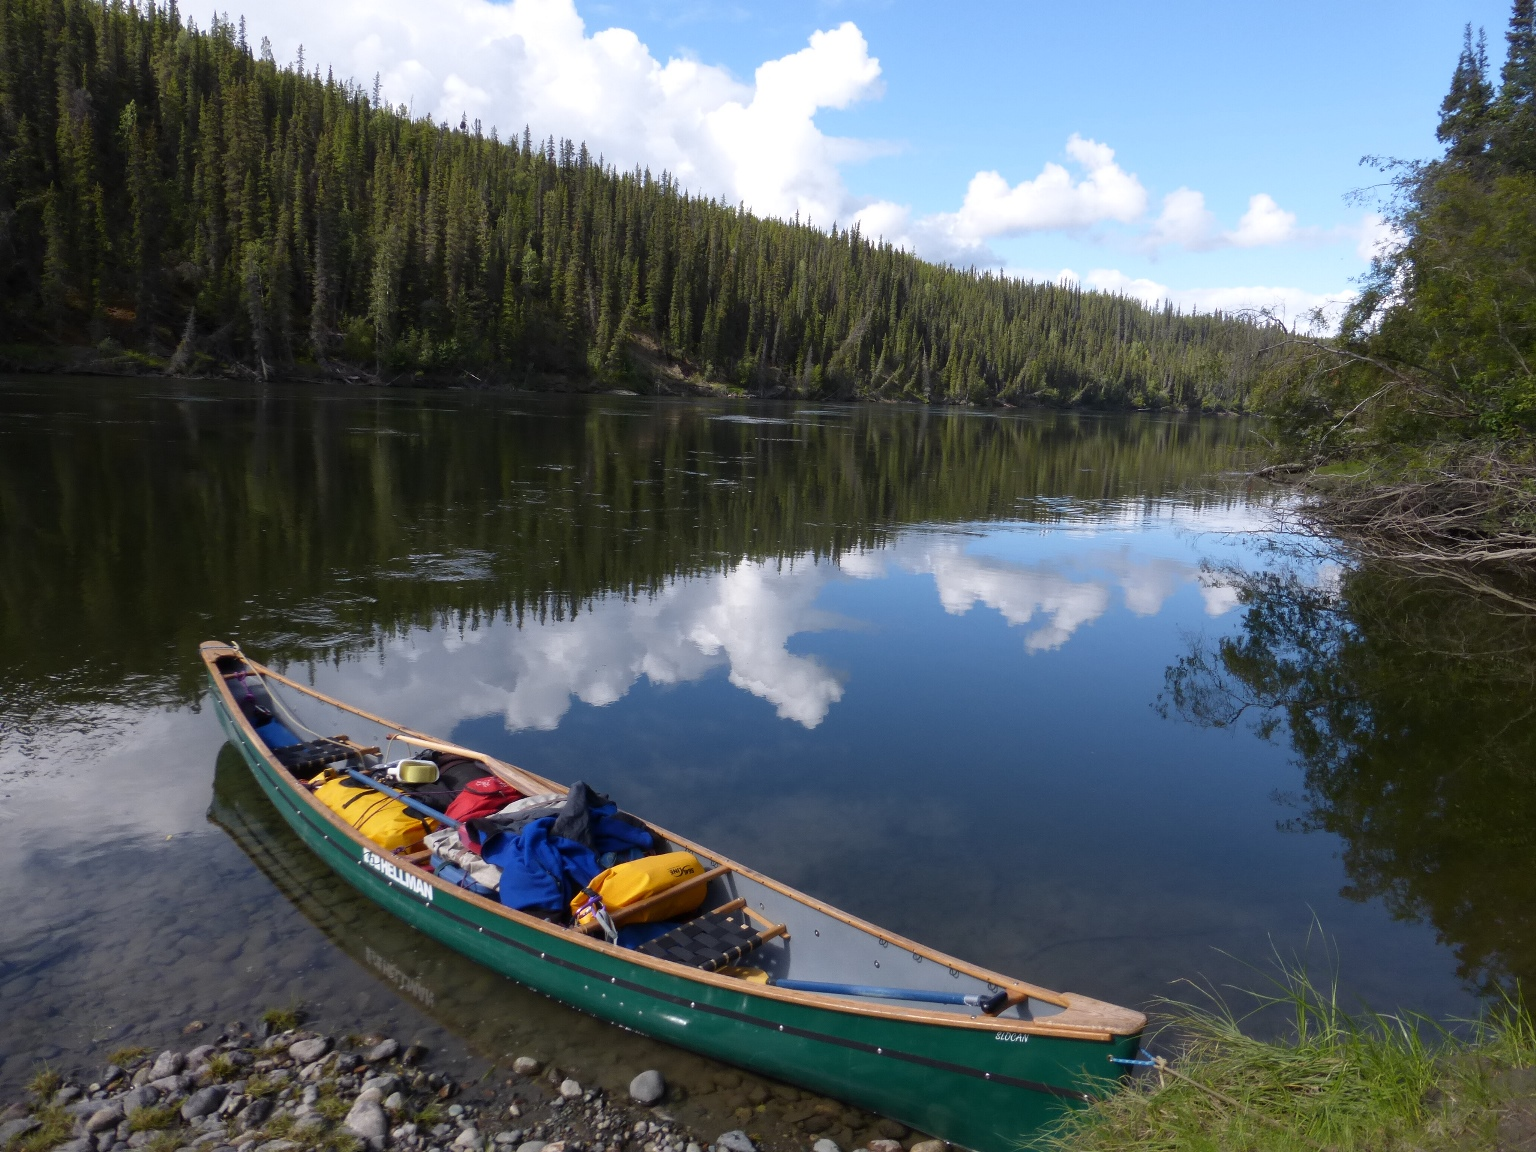 Shore lunch on the Teslin River